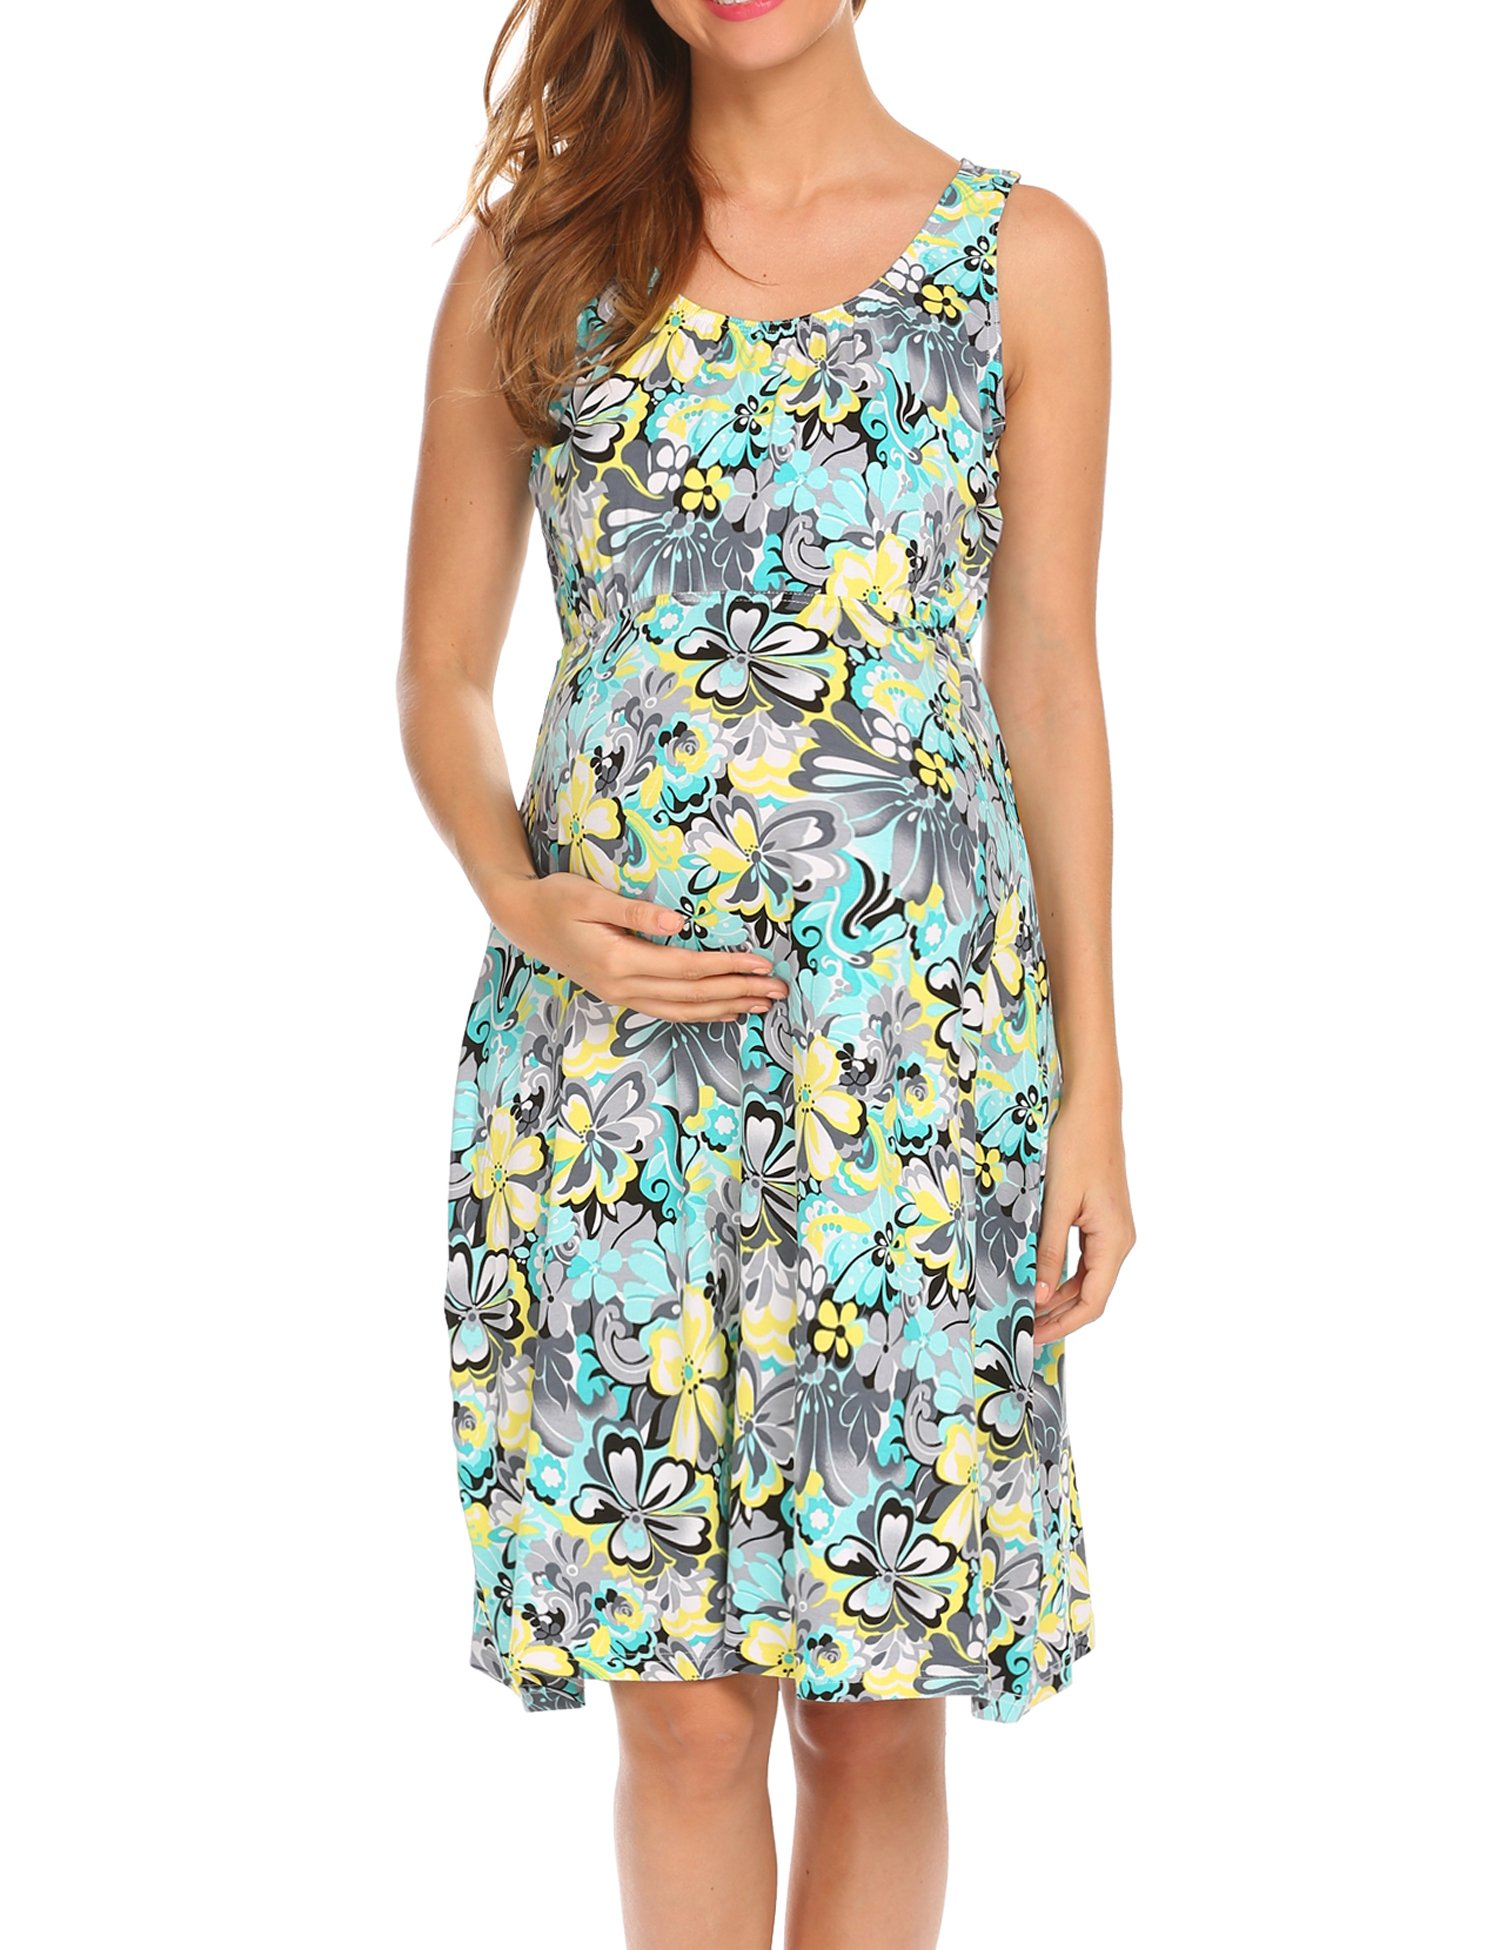 Hotouch Women 's Sleeveless Maternity Casual Maxi Dress for Party and Baby Shower Green Yellow L